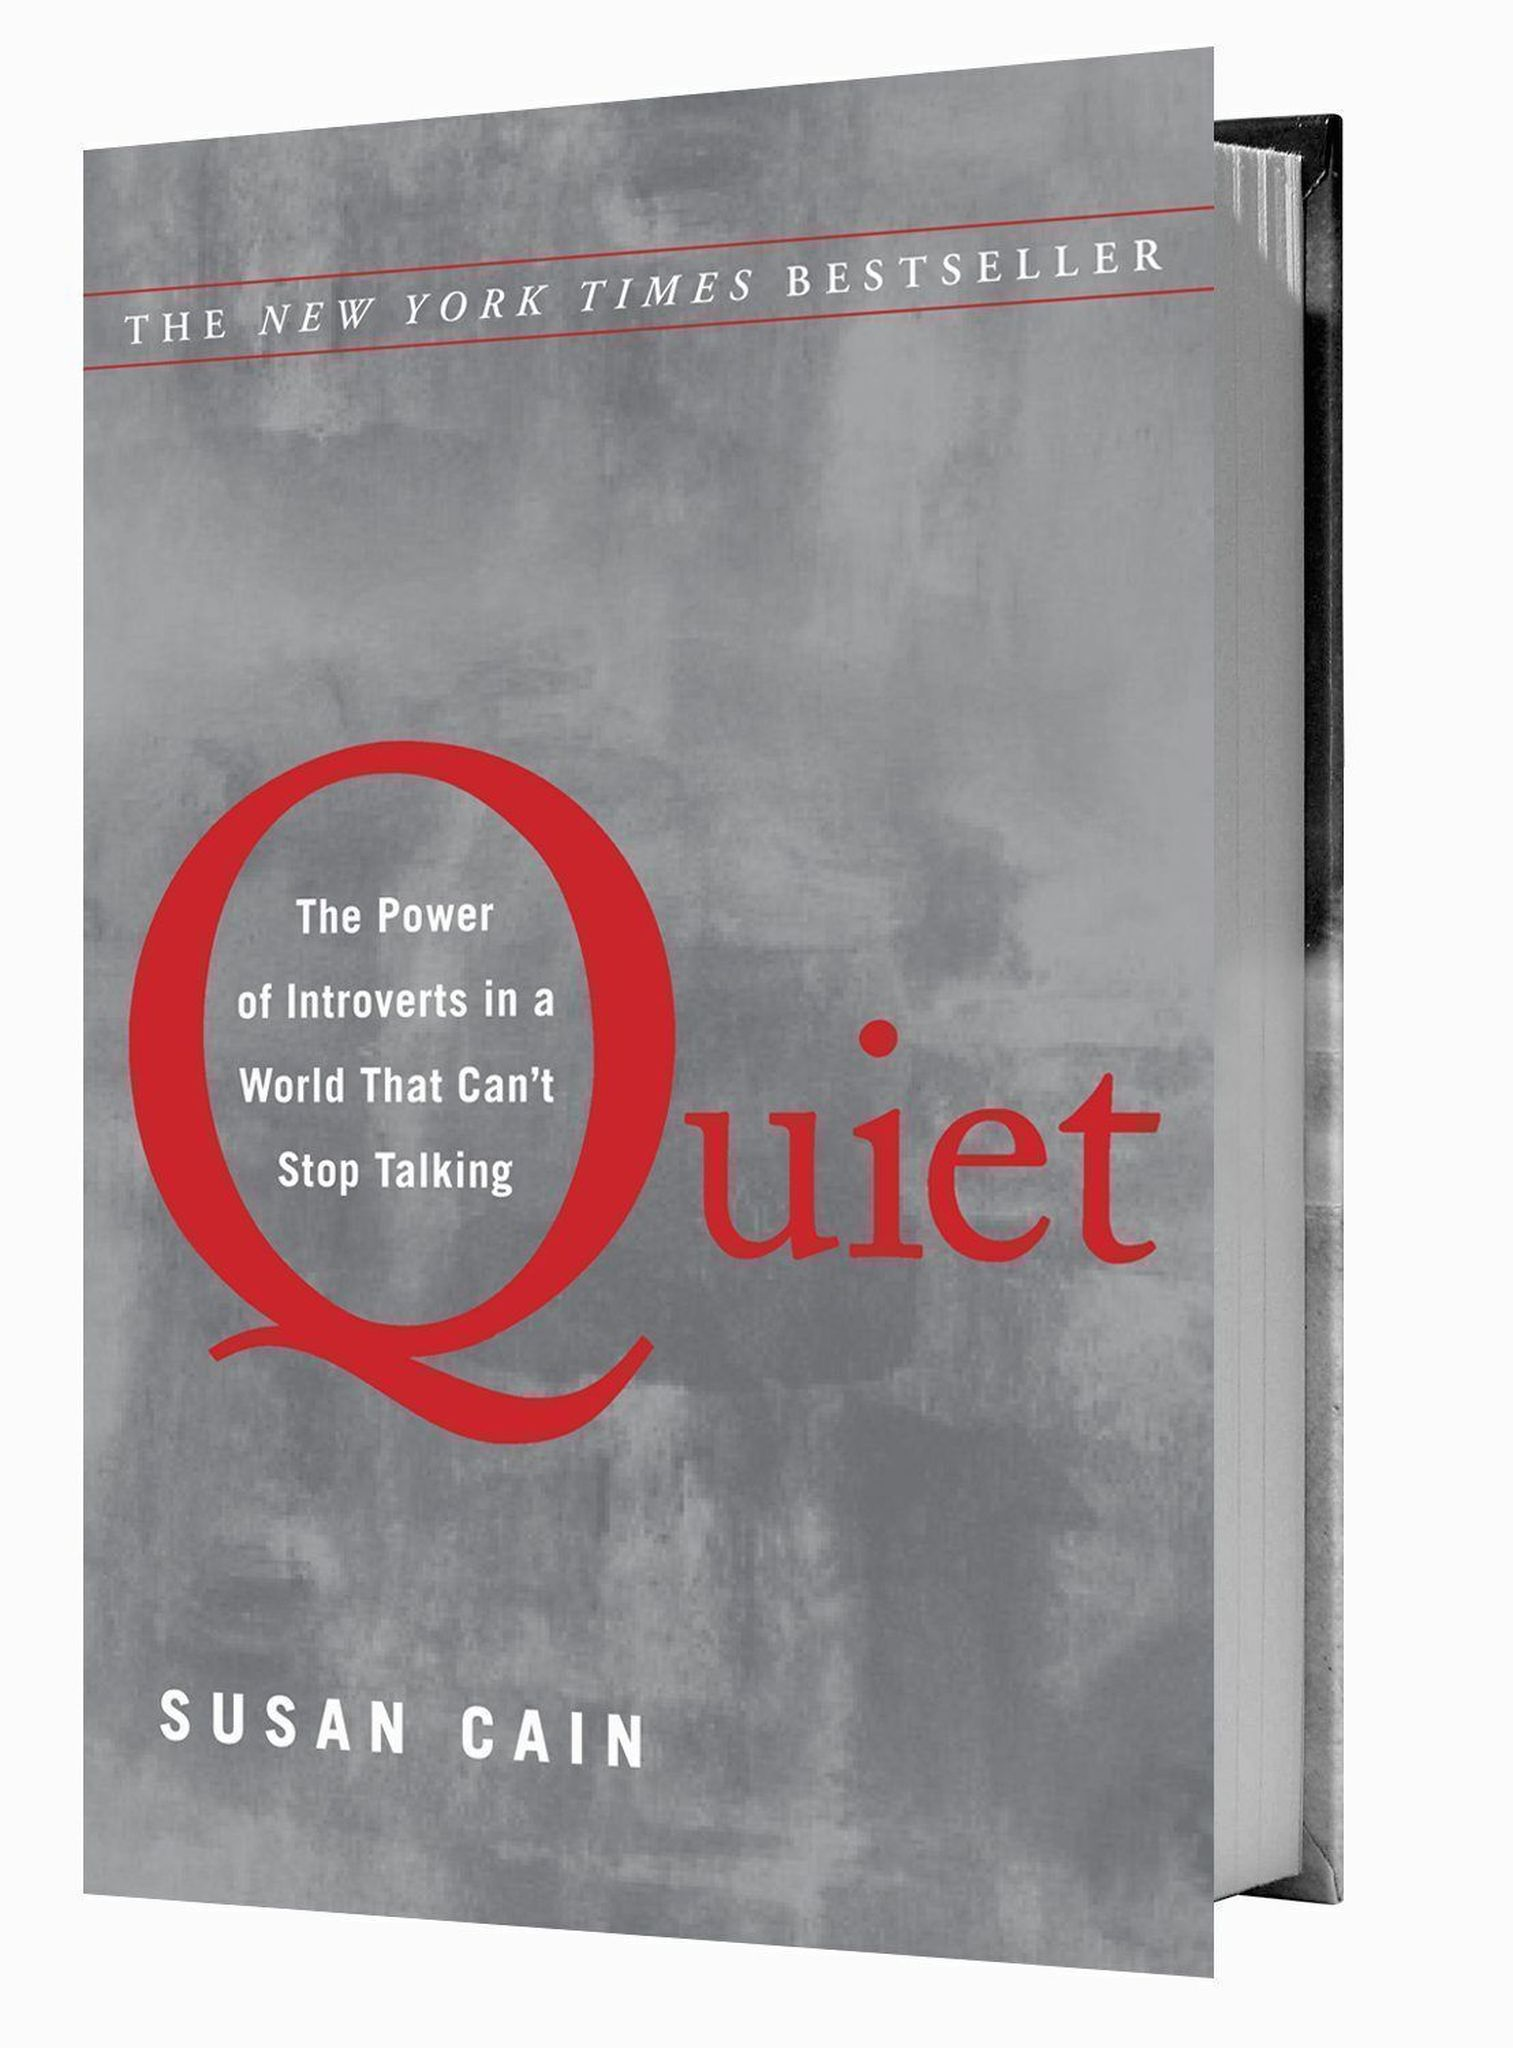 Quiet - A book about introverts